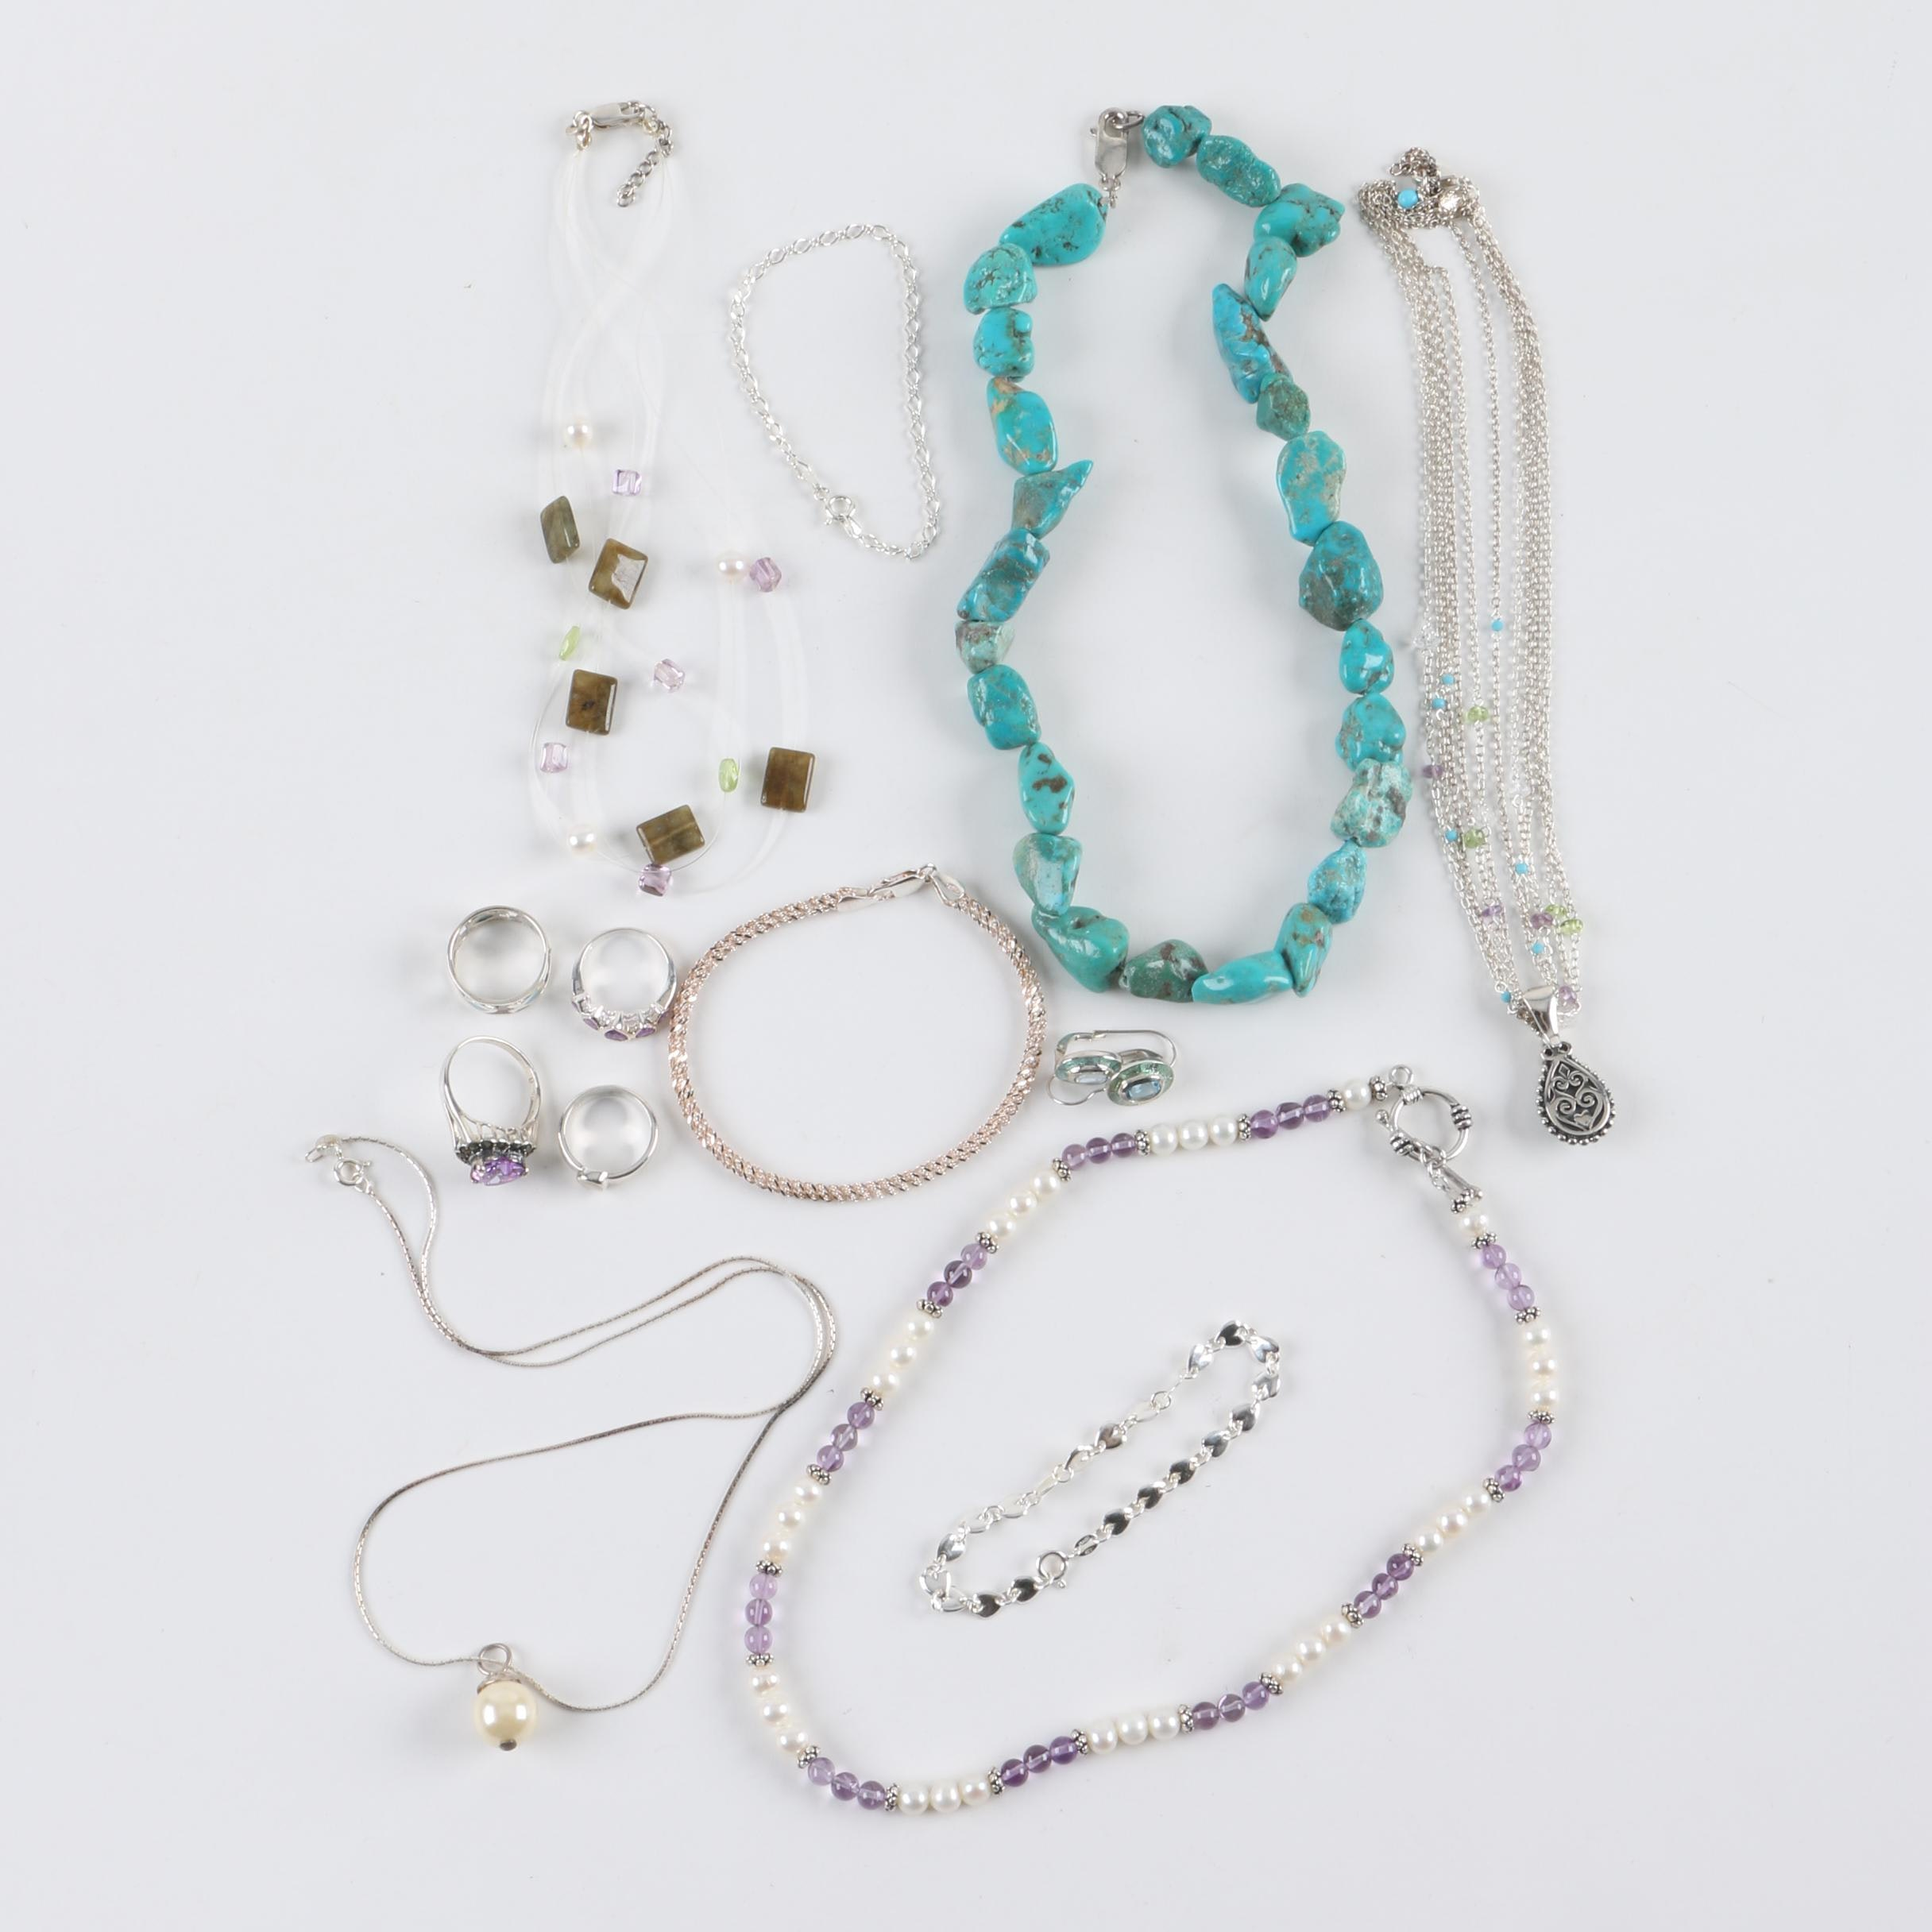 Sterling Silver Jewelry Collection Including Labradorite, Peridot, and Turquoise